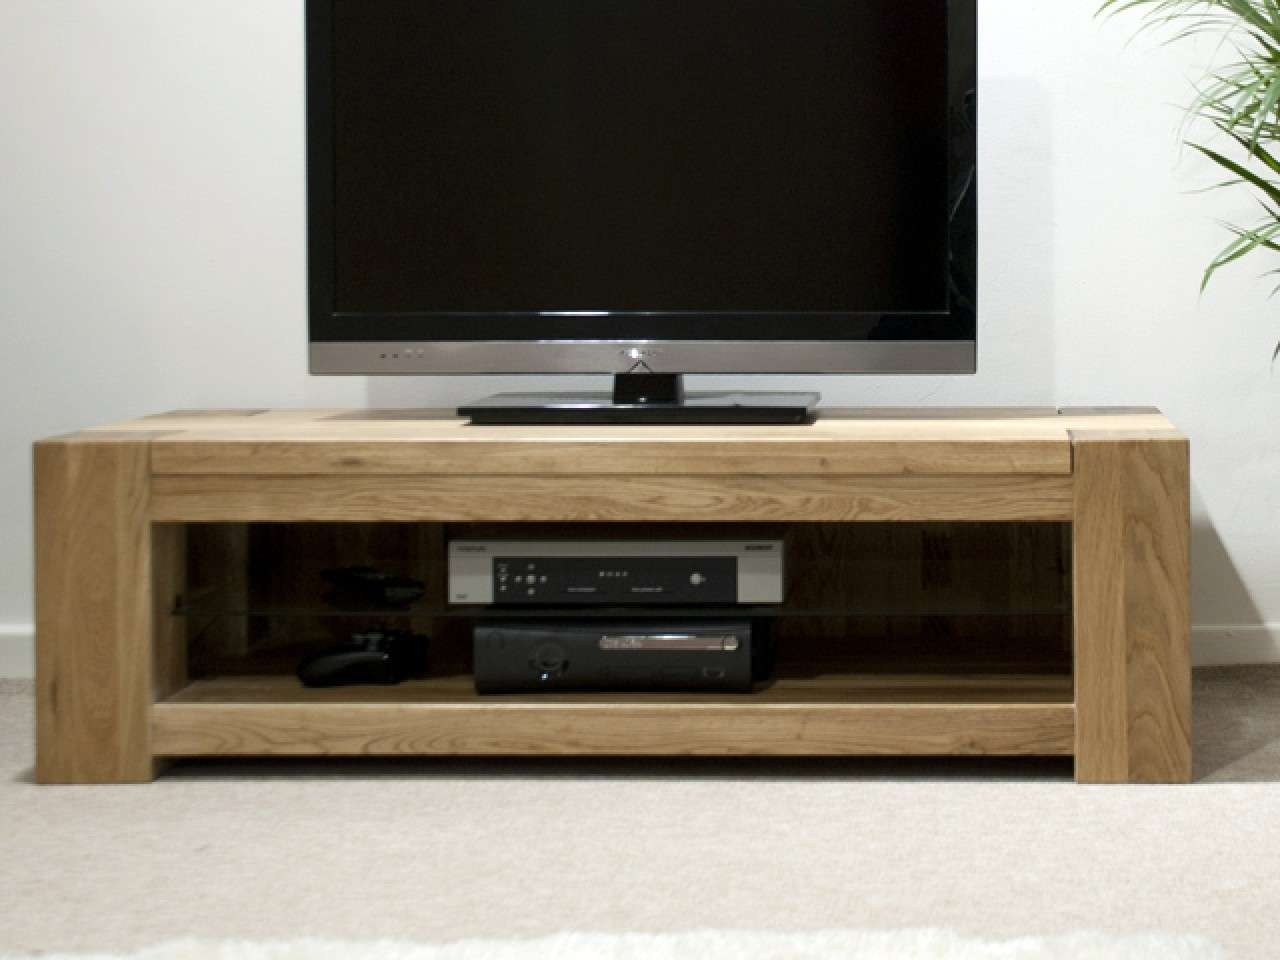 Innovative Designs Oak Tv Console | Marku Home Design With Oak Tv Cabinets For Flat Screens (Gallery 15 of 20)